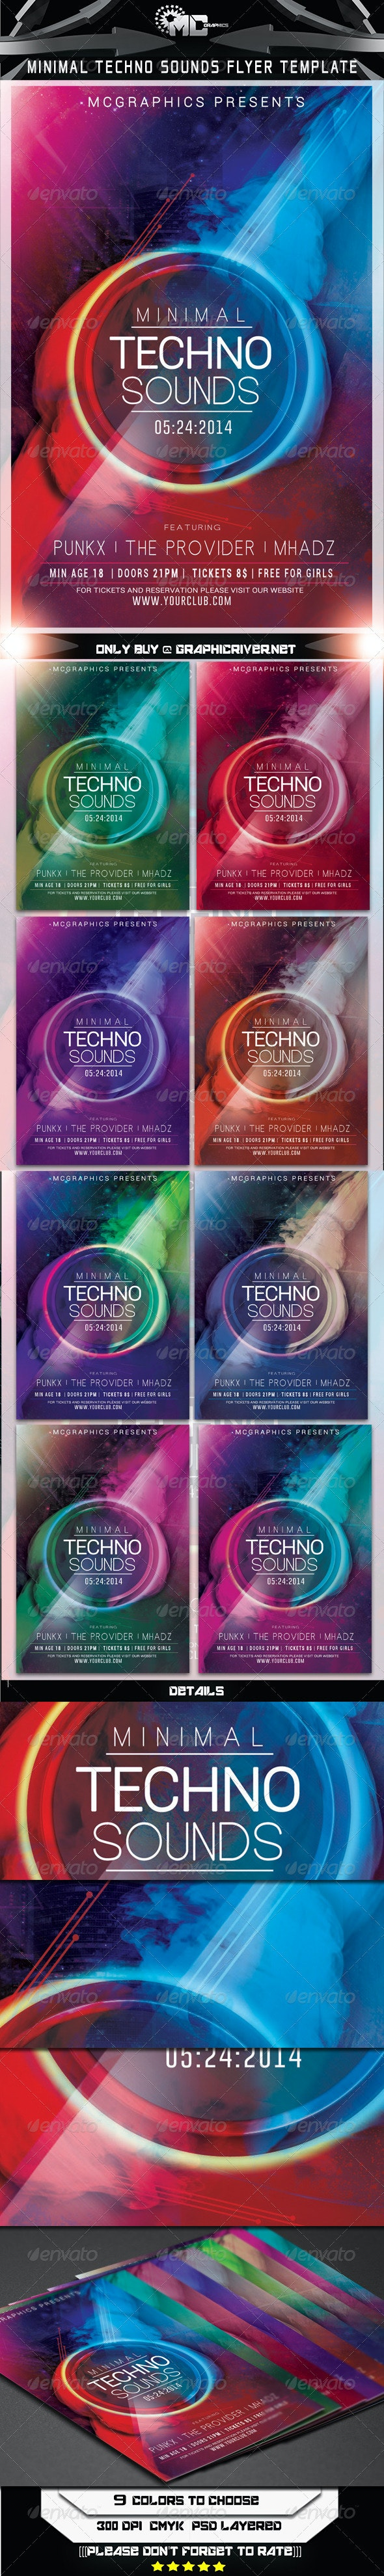 Minimal Techno Sounds Flyer Template - Flyers Print Templates